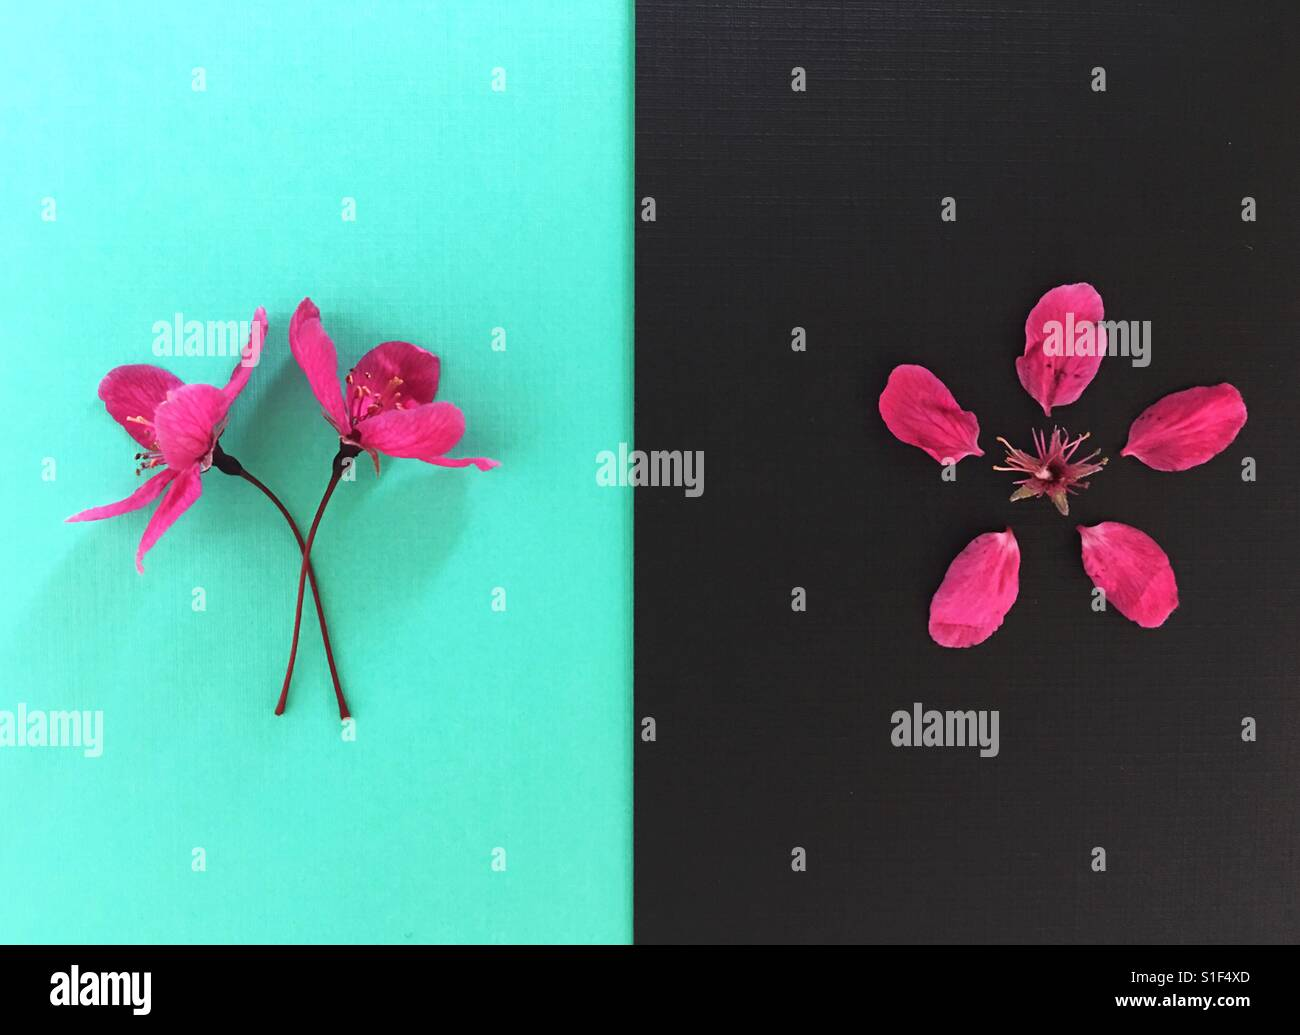 A pair of crabapple blossoms and one deconstructed blossom. - Stock Image